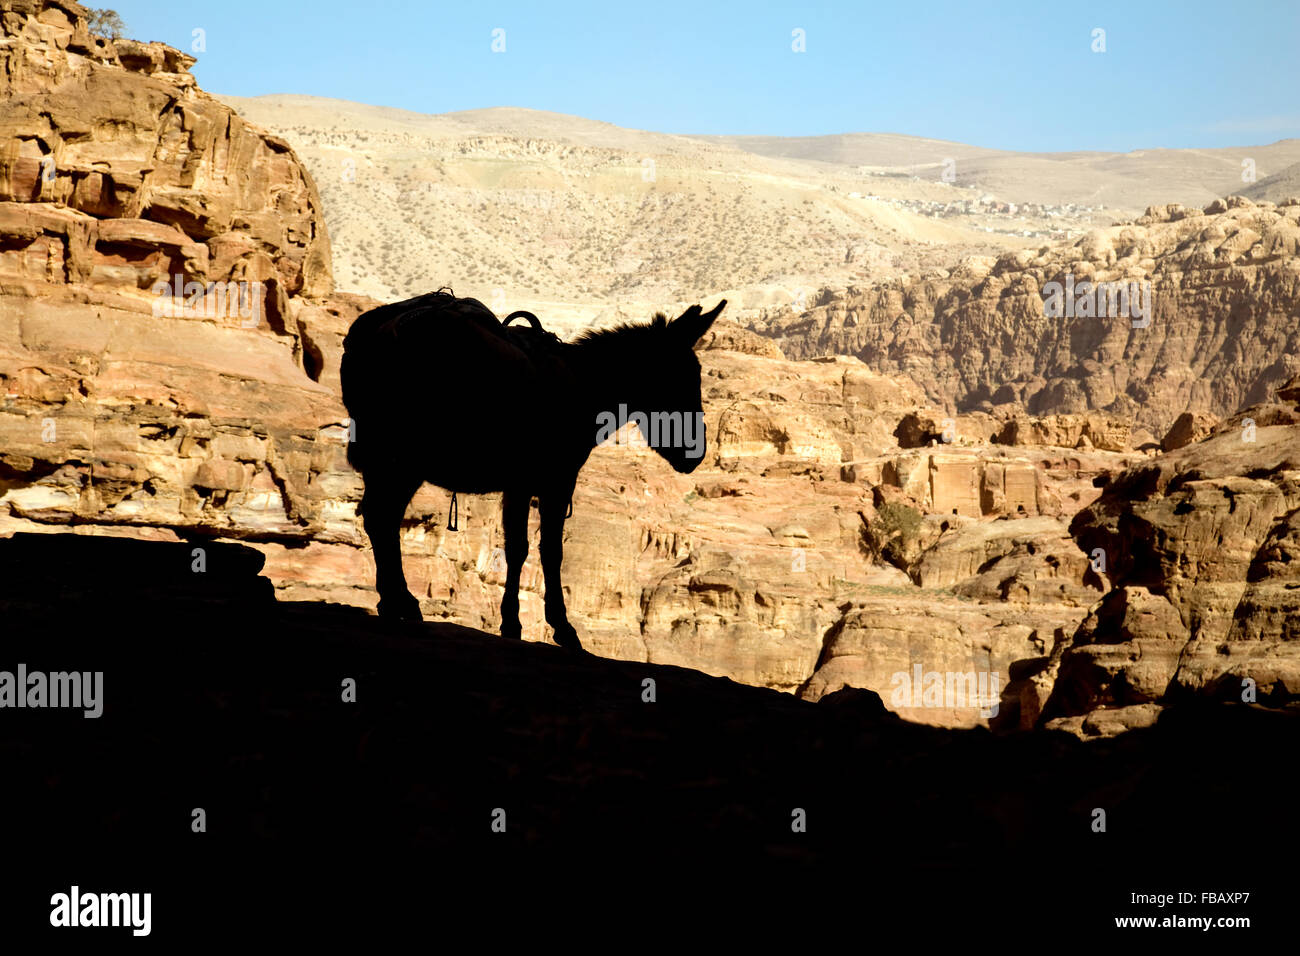 The silhouette of a donkey against the sunlit mountains of Jordan, Middle East, Asia - Stock Image